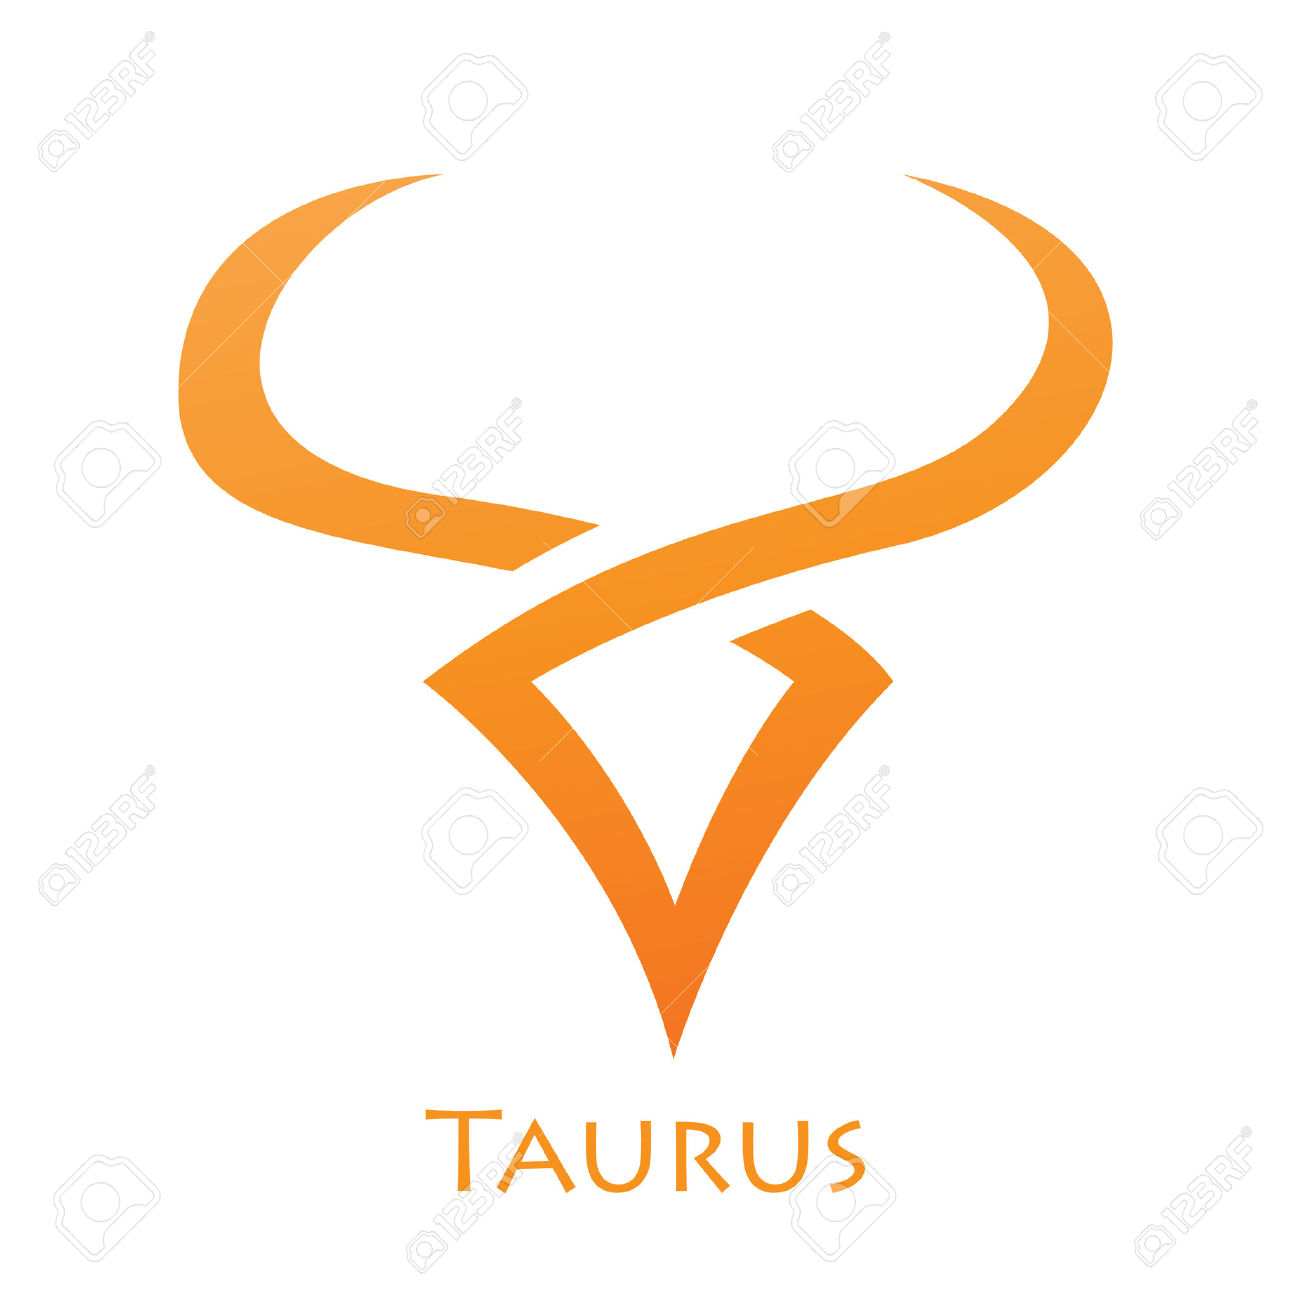 Taurus clipart #13, Download drawings